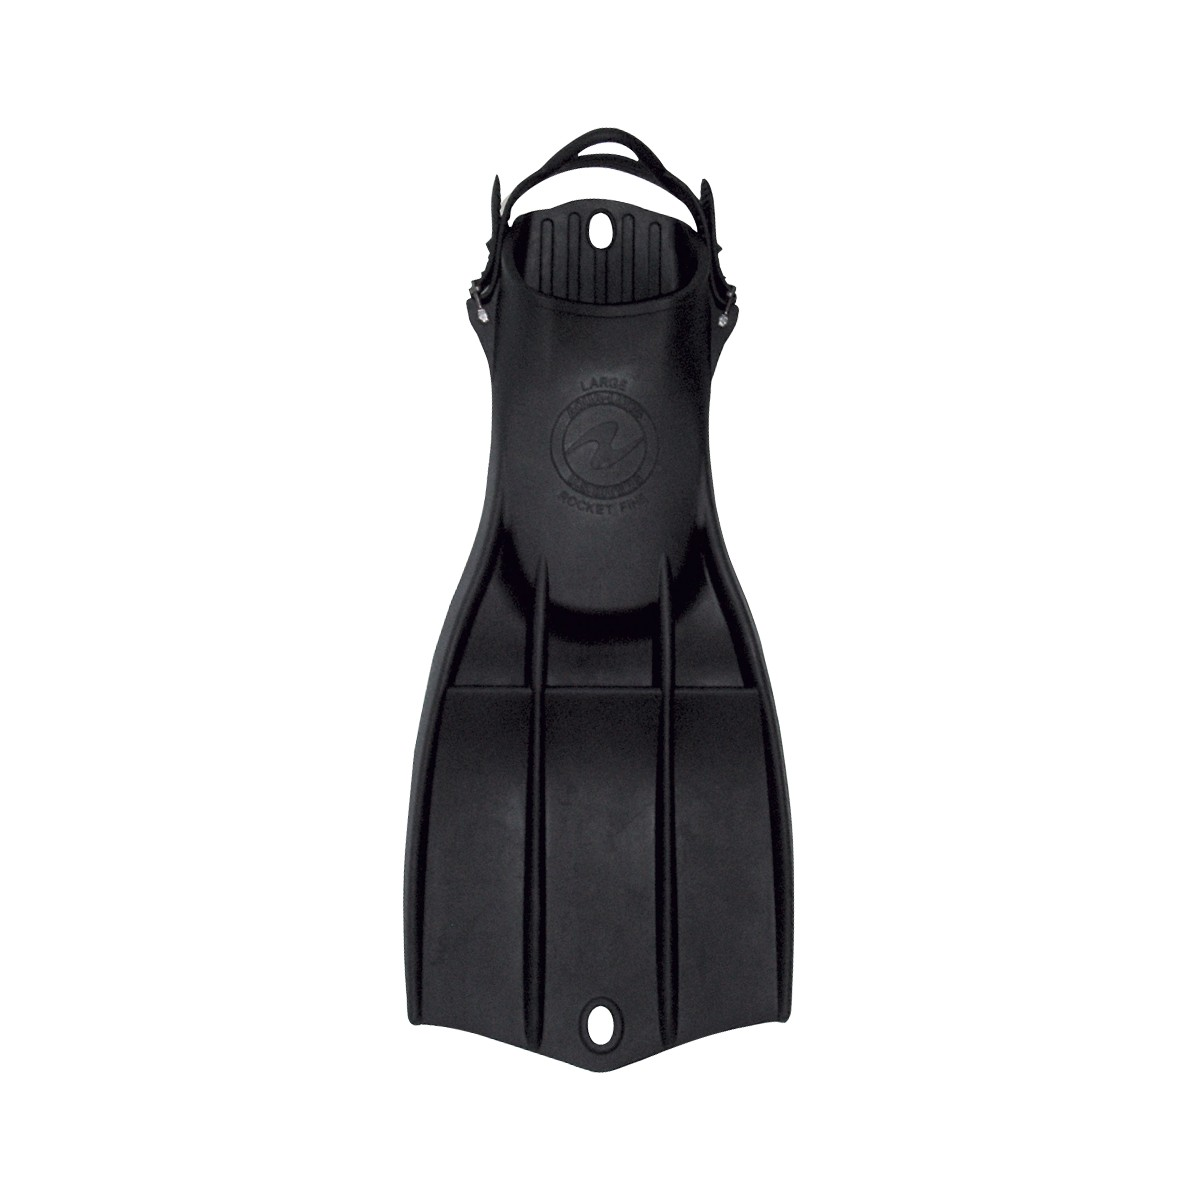 Aqua Lung Rocket II Open Heel Diving Fin